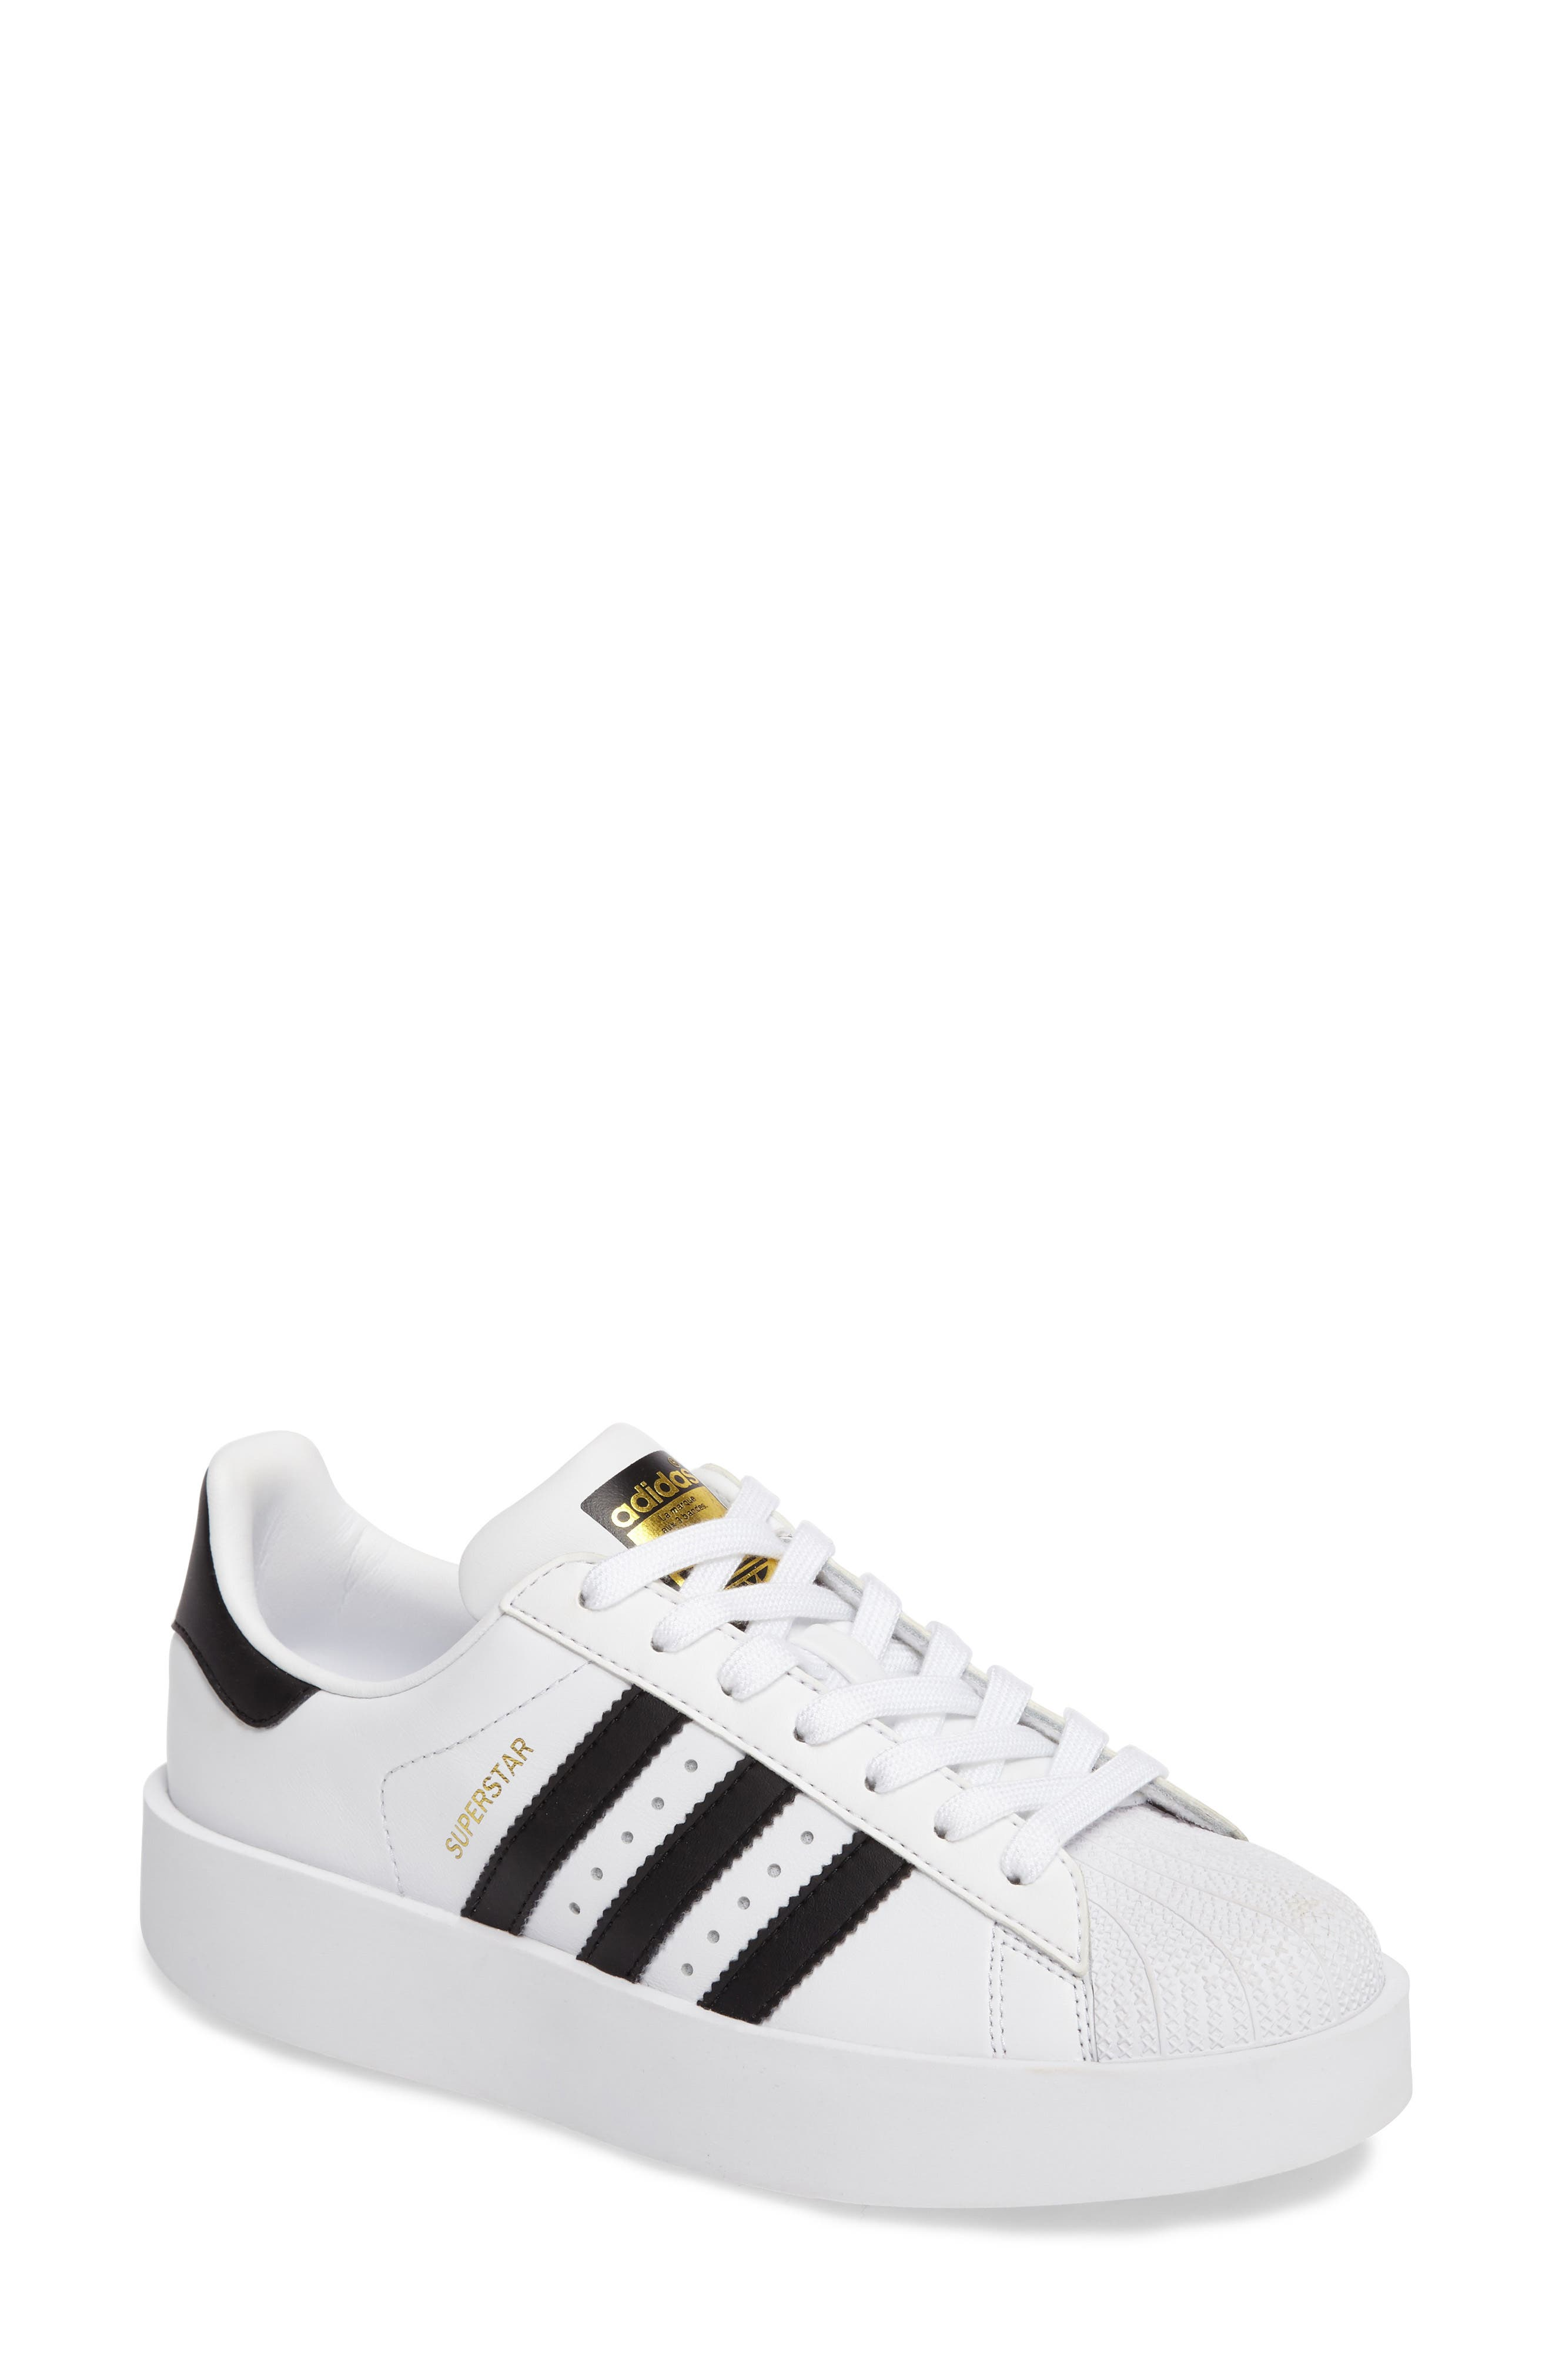 Alternate Image 1 Selected - adidas Superstar Bold Platform Sneaker (Women)